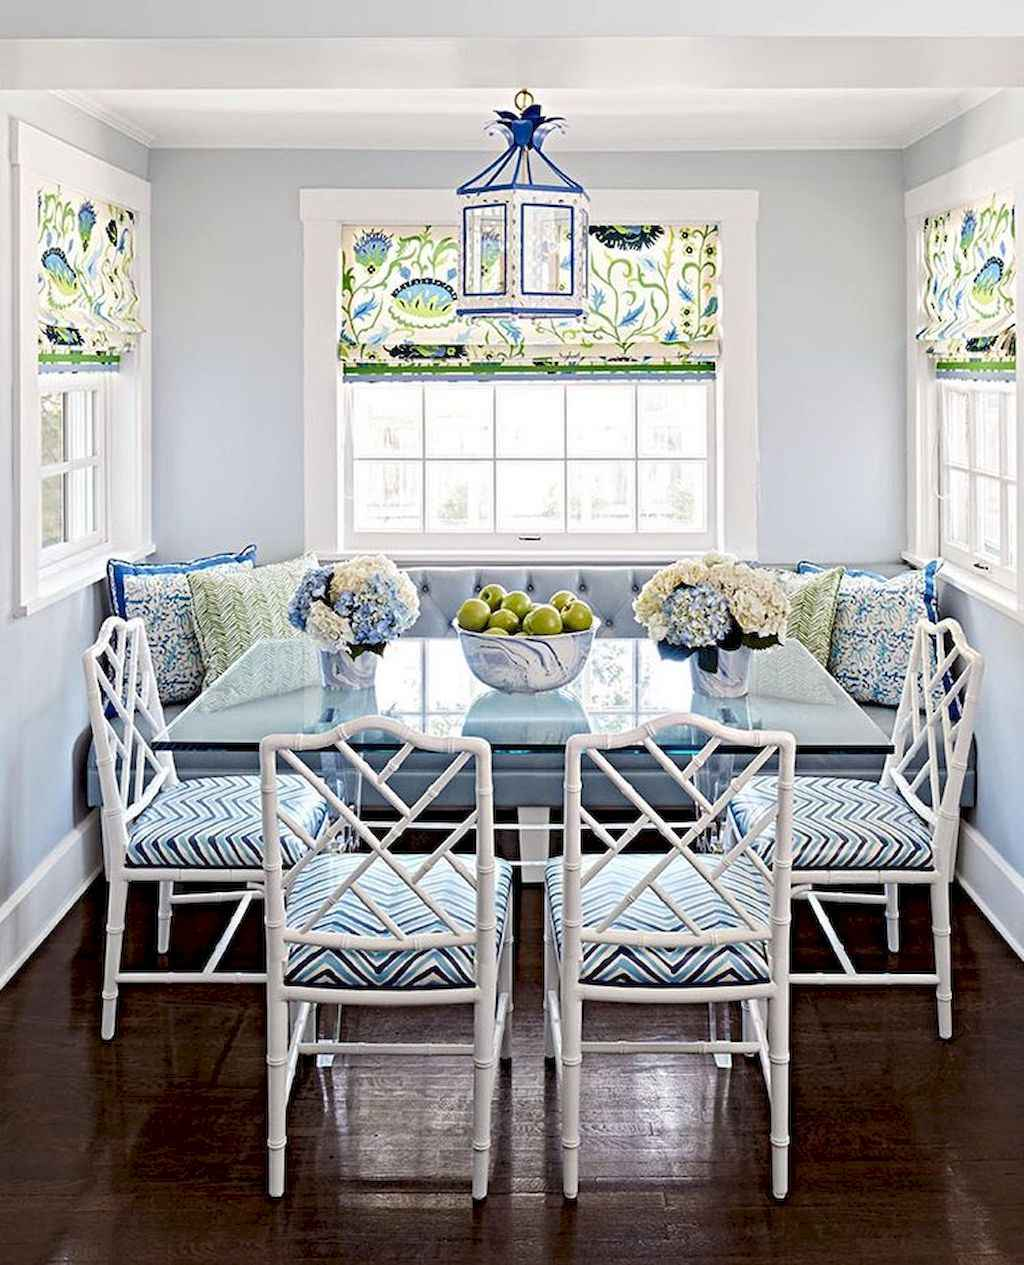 Clever small dining room ideas (45)